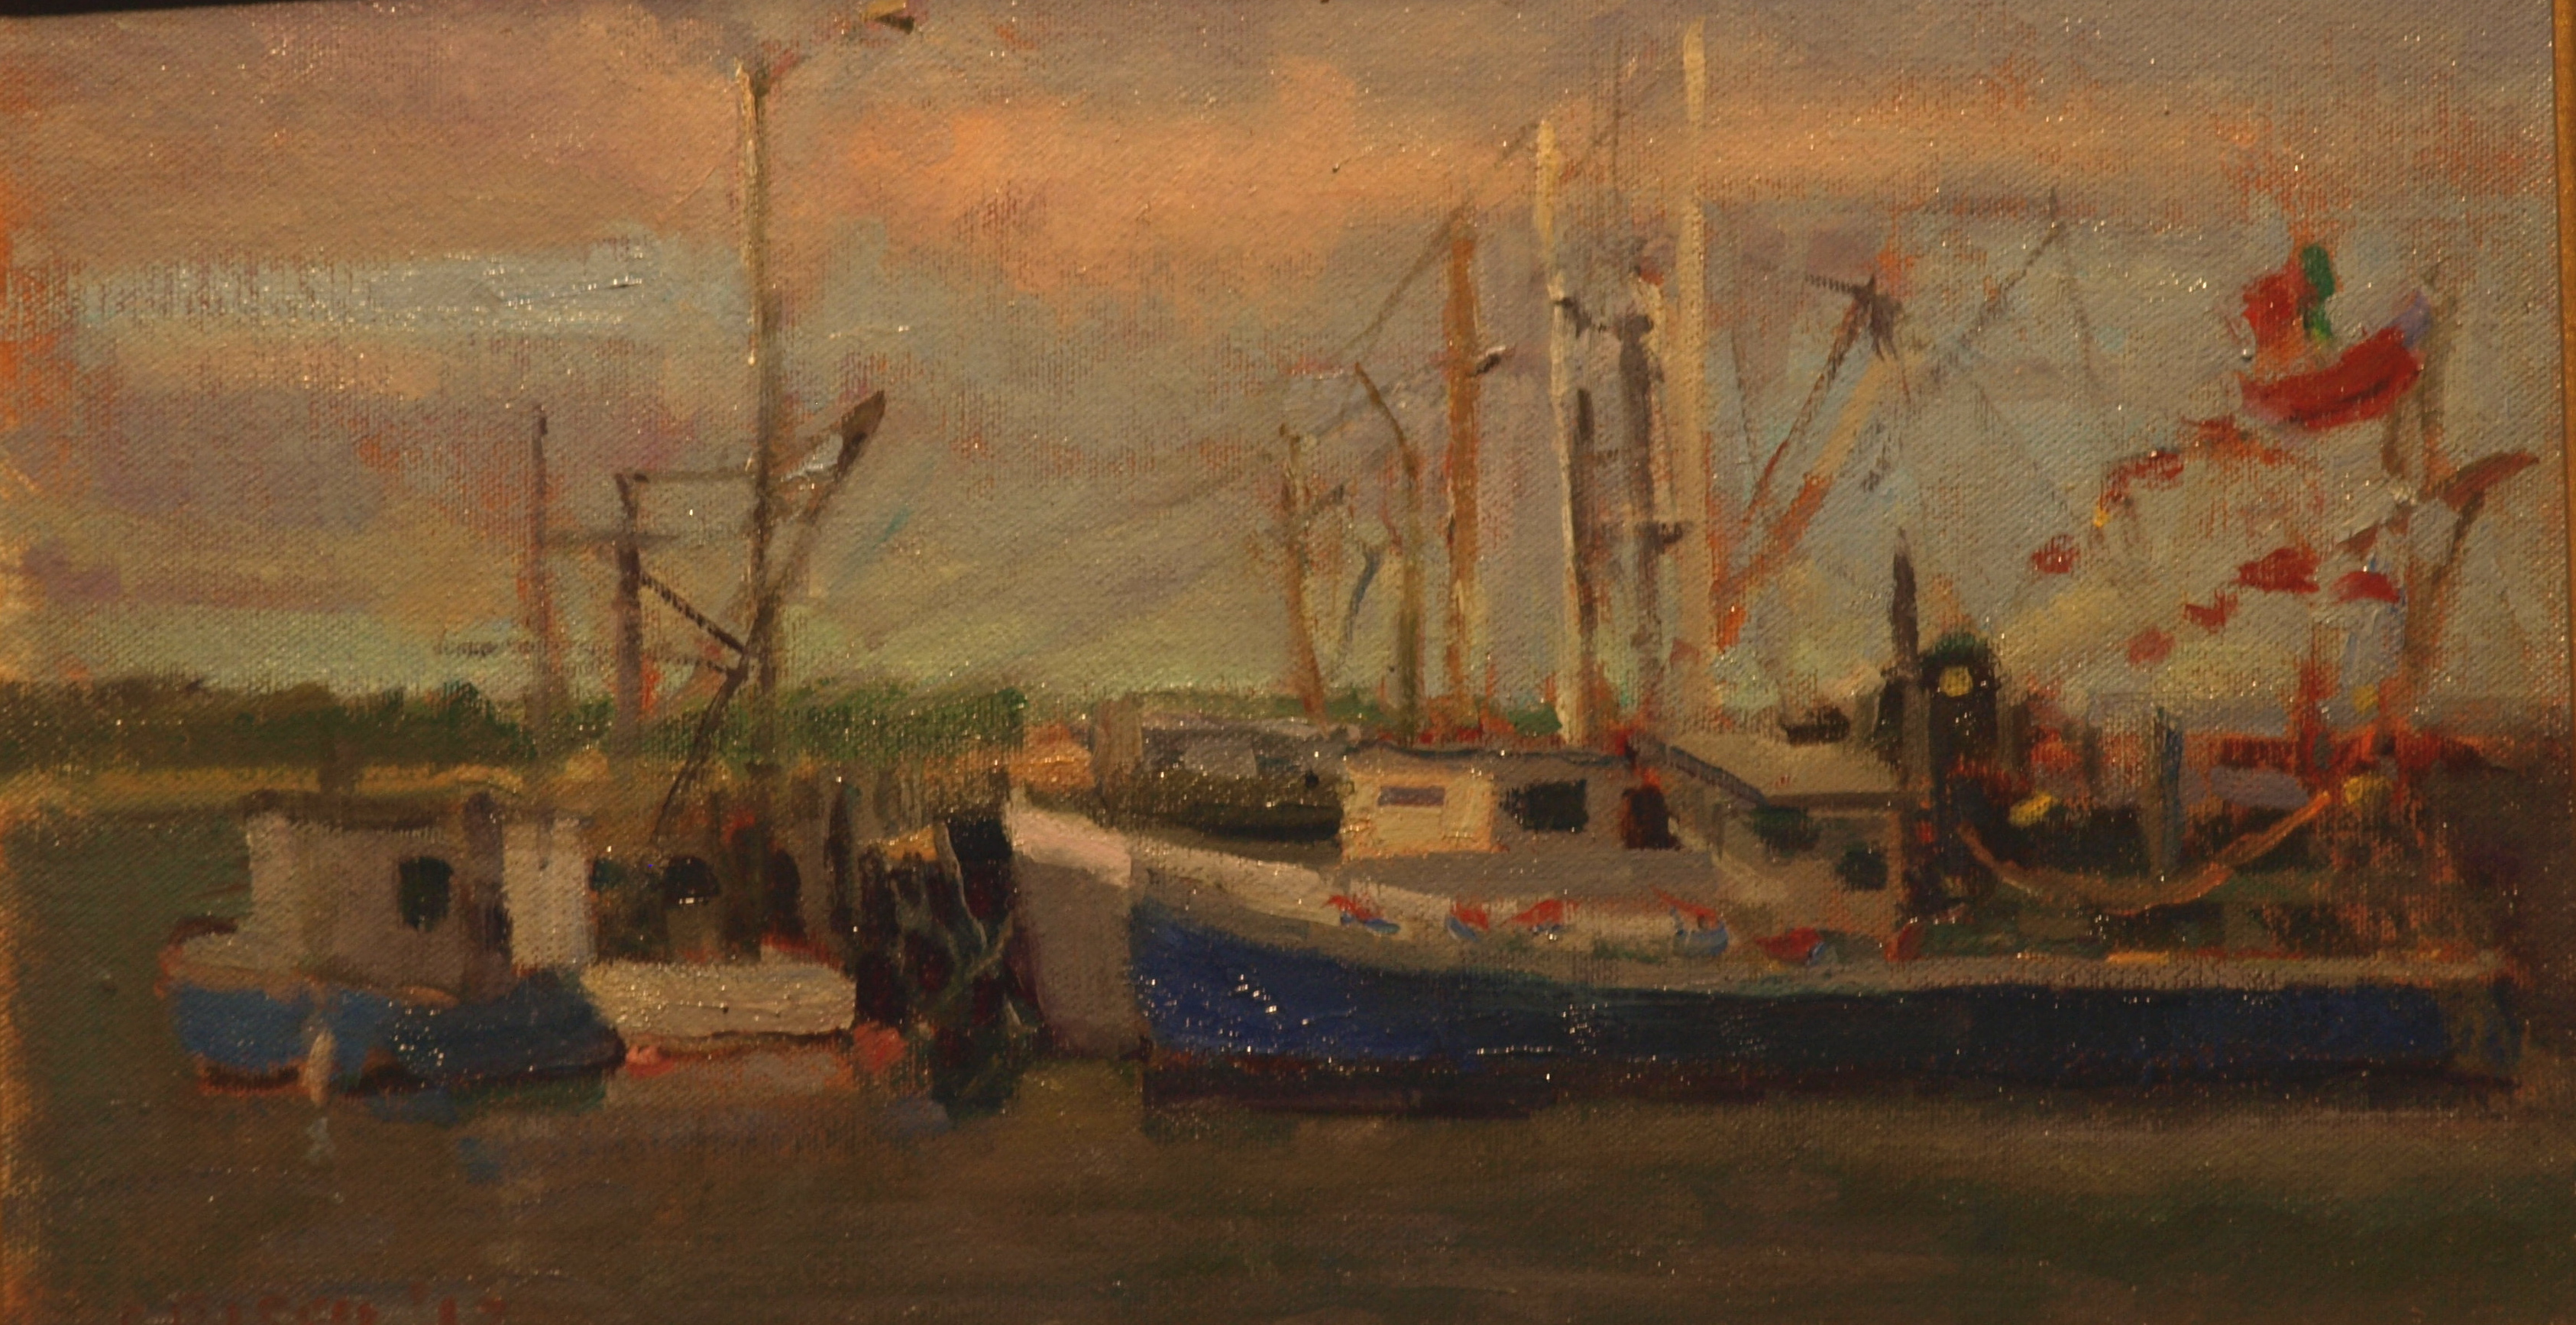 Boats and Pennants, Oil on Canvas on Panel, 9 x 16 Inches, by Susan Grisell, $250